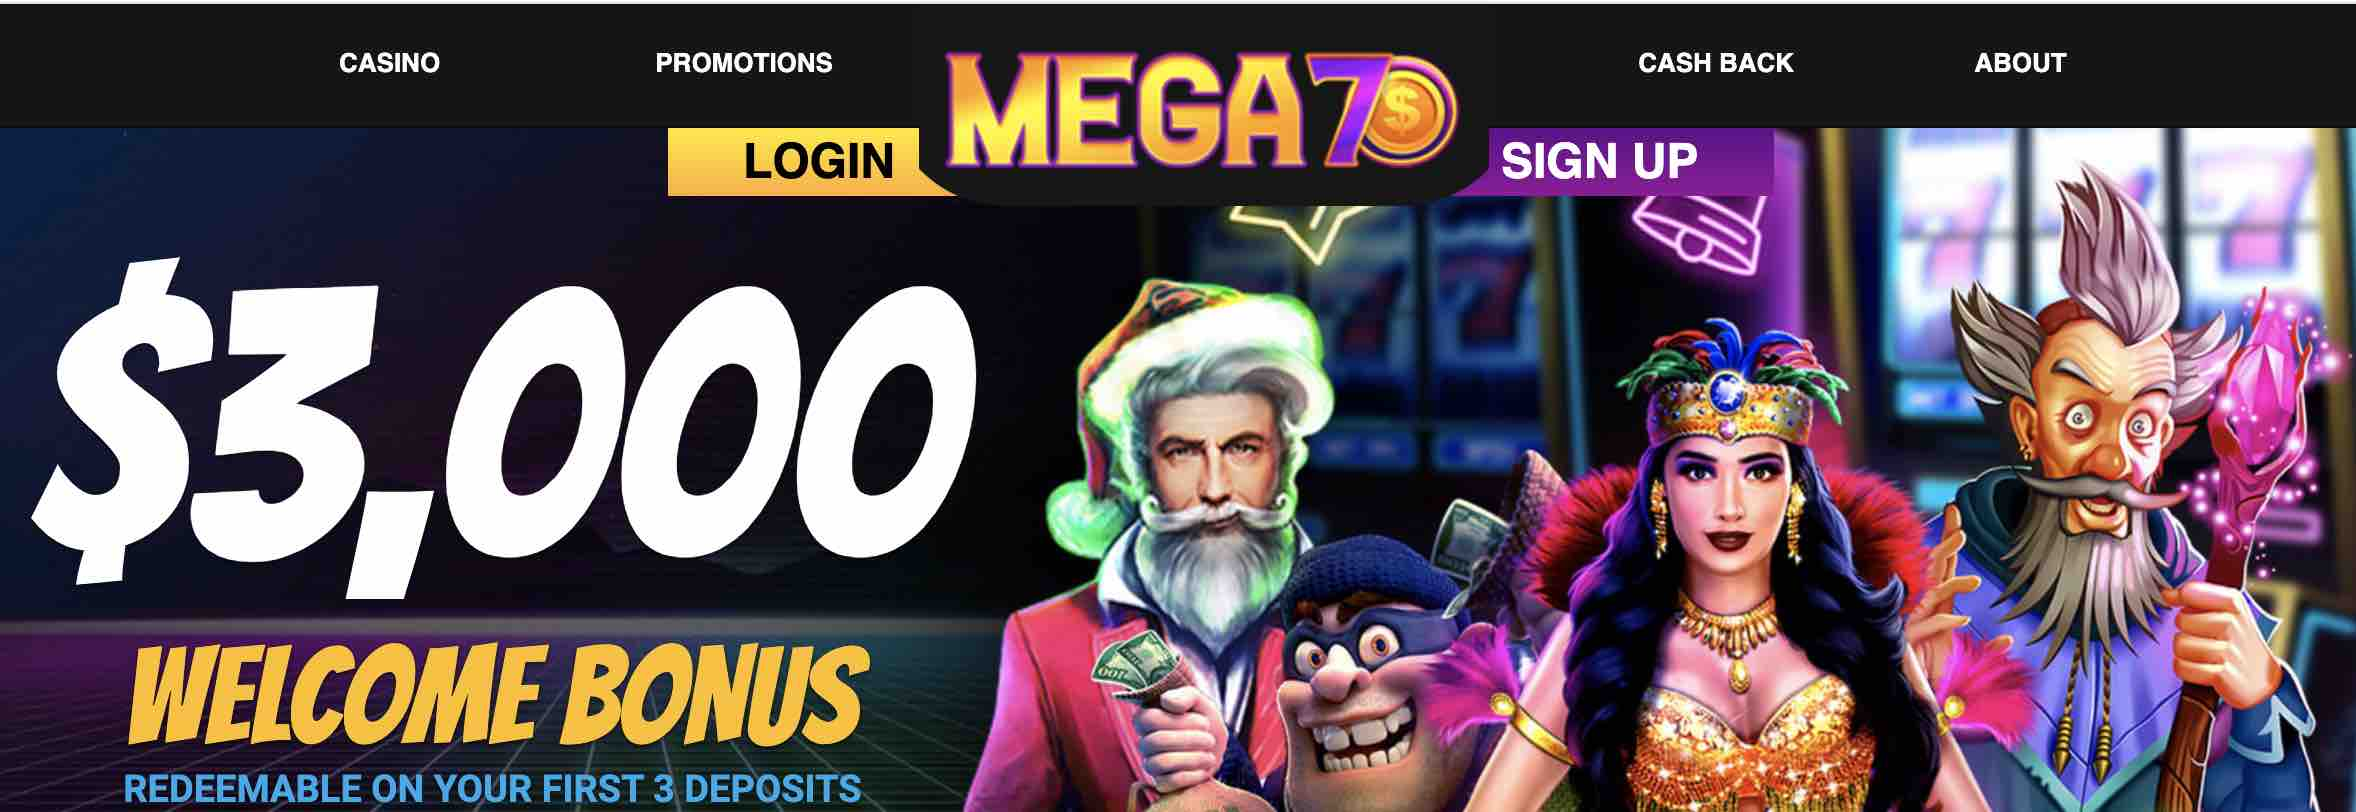 Mega7sWelcomeBonus